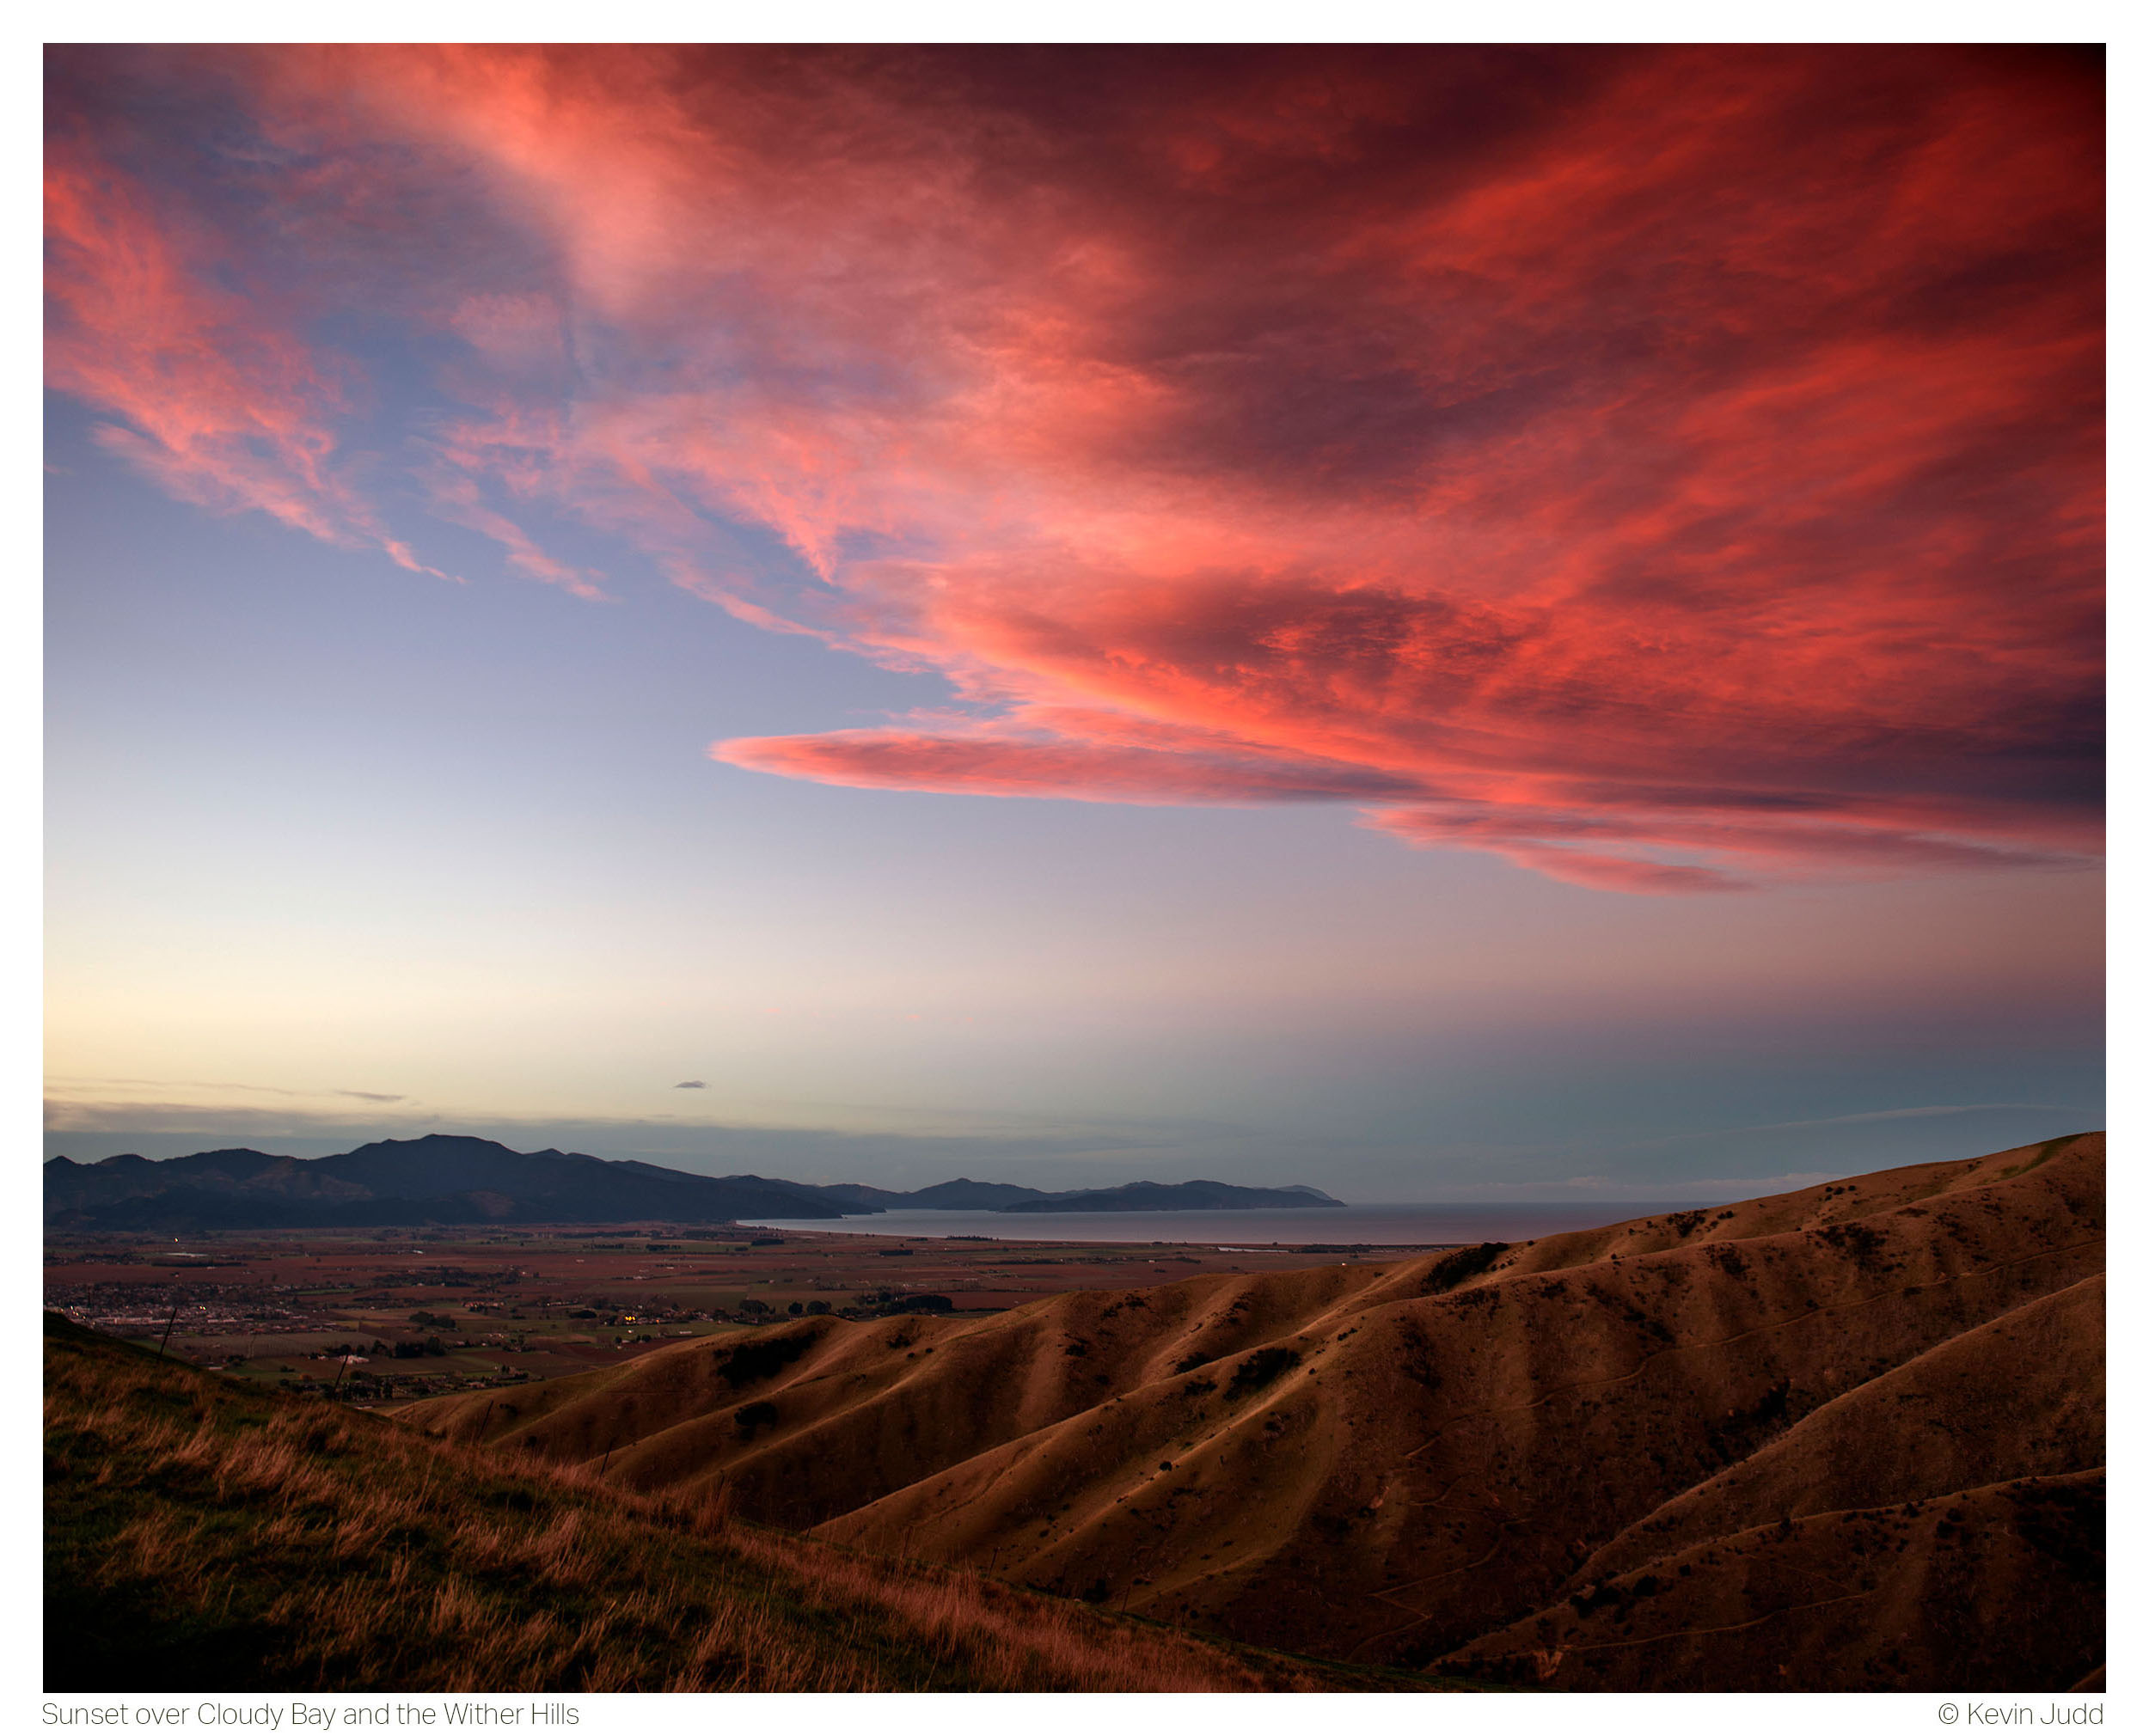 Sunset over Cloudy Bay and the Wither Hills 2.5K.jpg